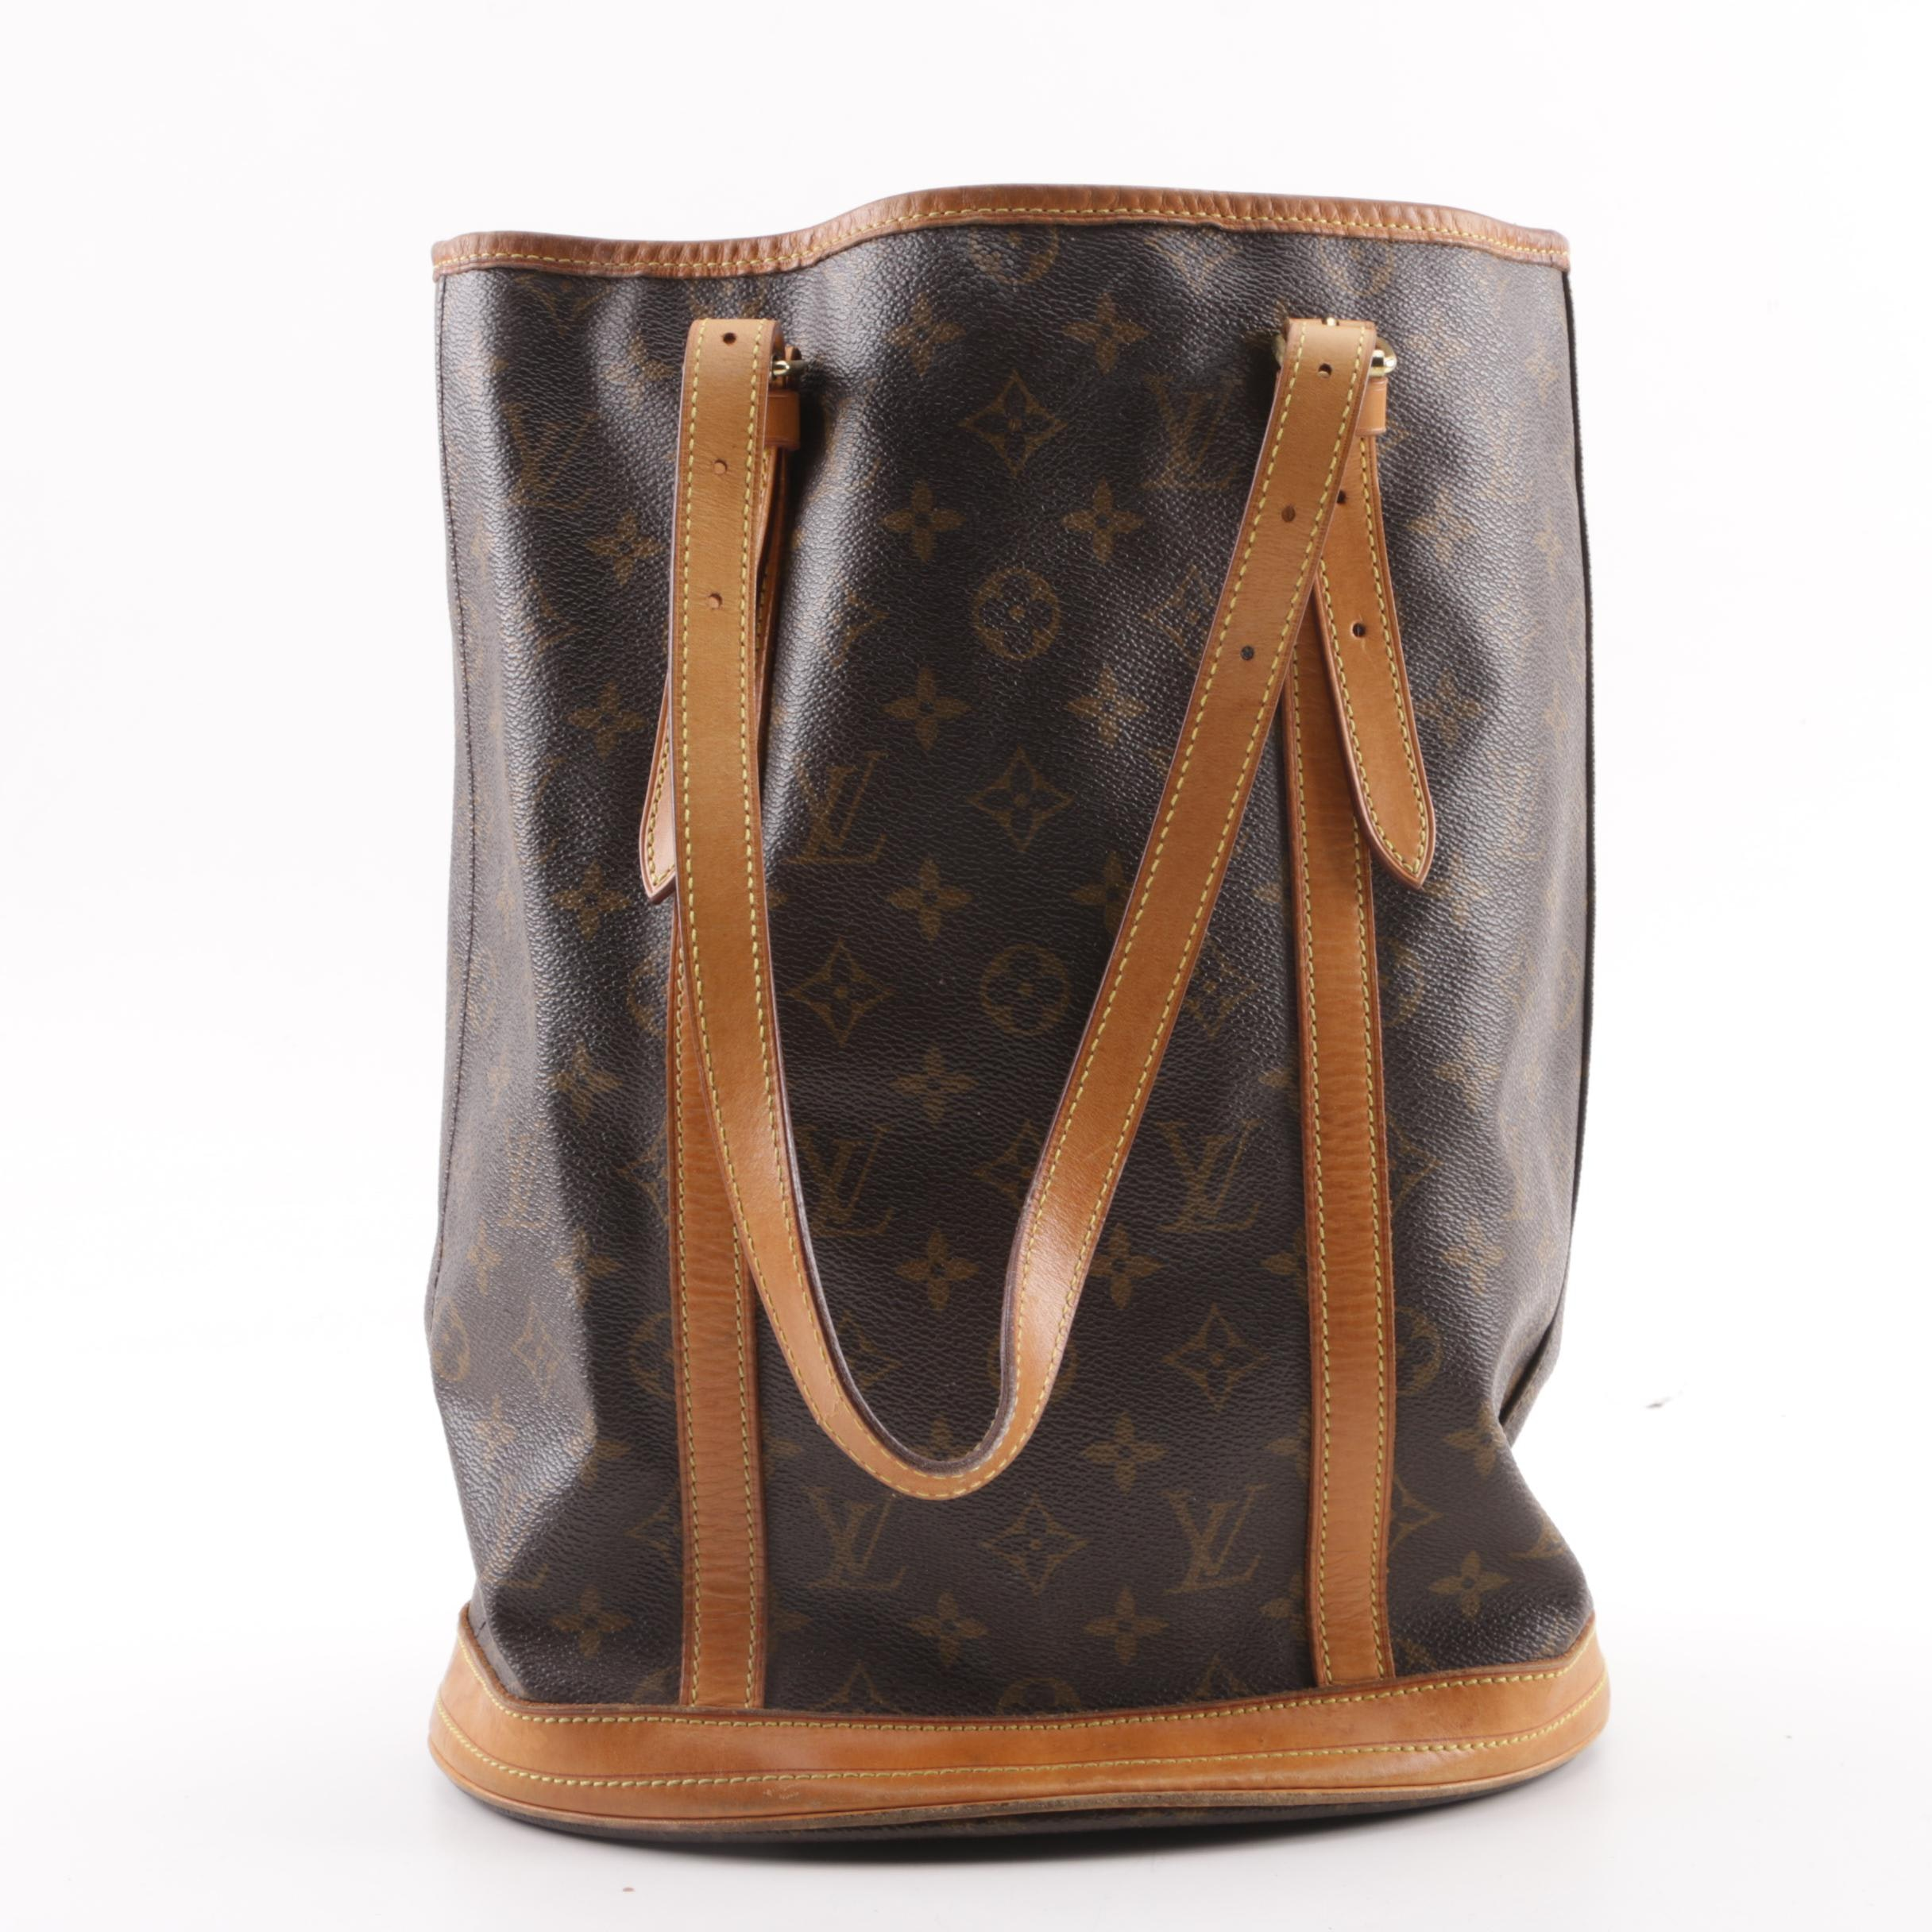 1998 Vintage Louis Vuitton Paris Monogram Canvas Bucket Bag